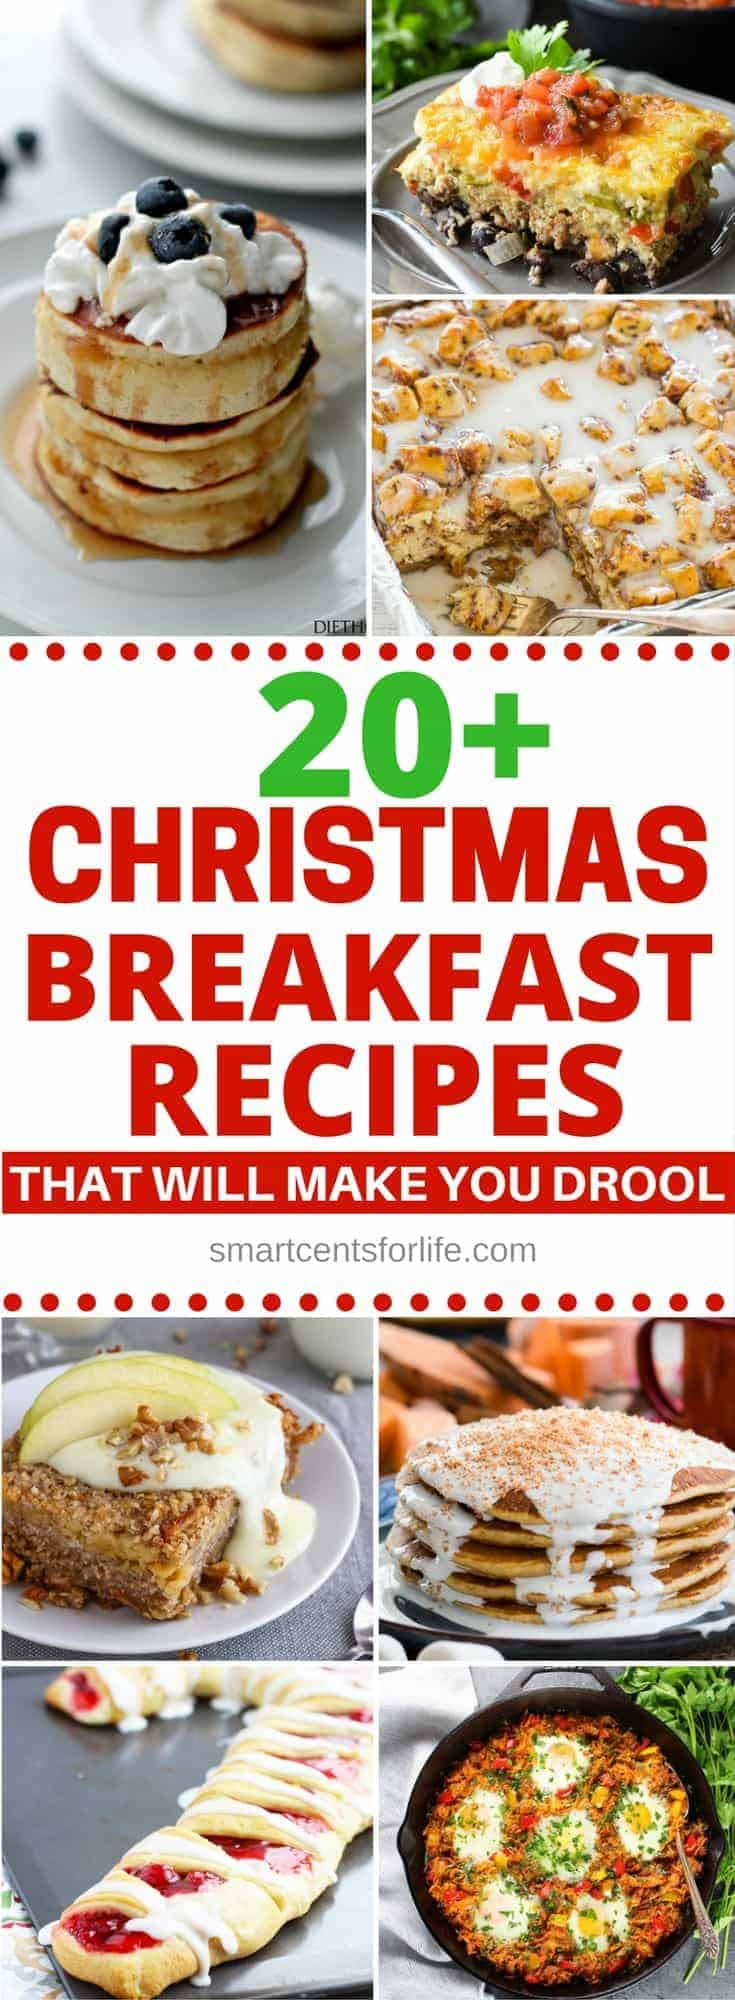 20+ Christmas breakfast recipes to enjoy these Holidays! These recipes are easy to make and they will please everyone including the kids! Whether you are looking for some Christmas breakfast ideas for Christmas morning, Christmas Eve or any other day, there are plenty of amazing Christmas breakfast and brunch ideas to choose from! #Christmasday #Christmasbreakfastideas #Christmasbreakfastrecipes